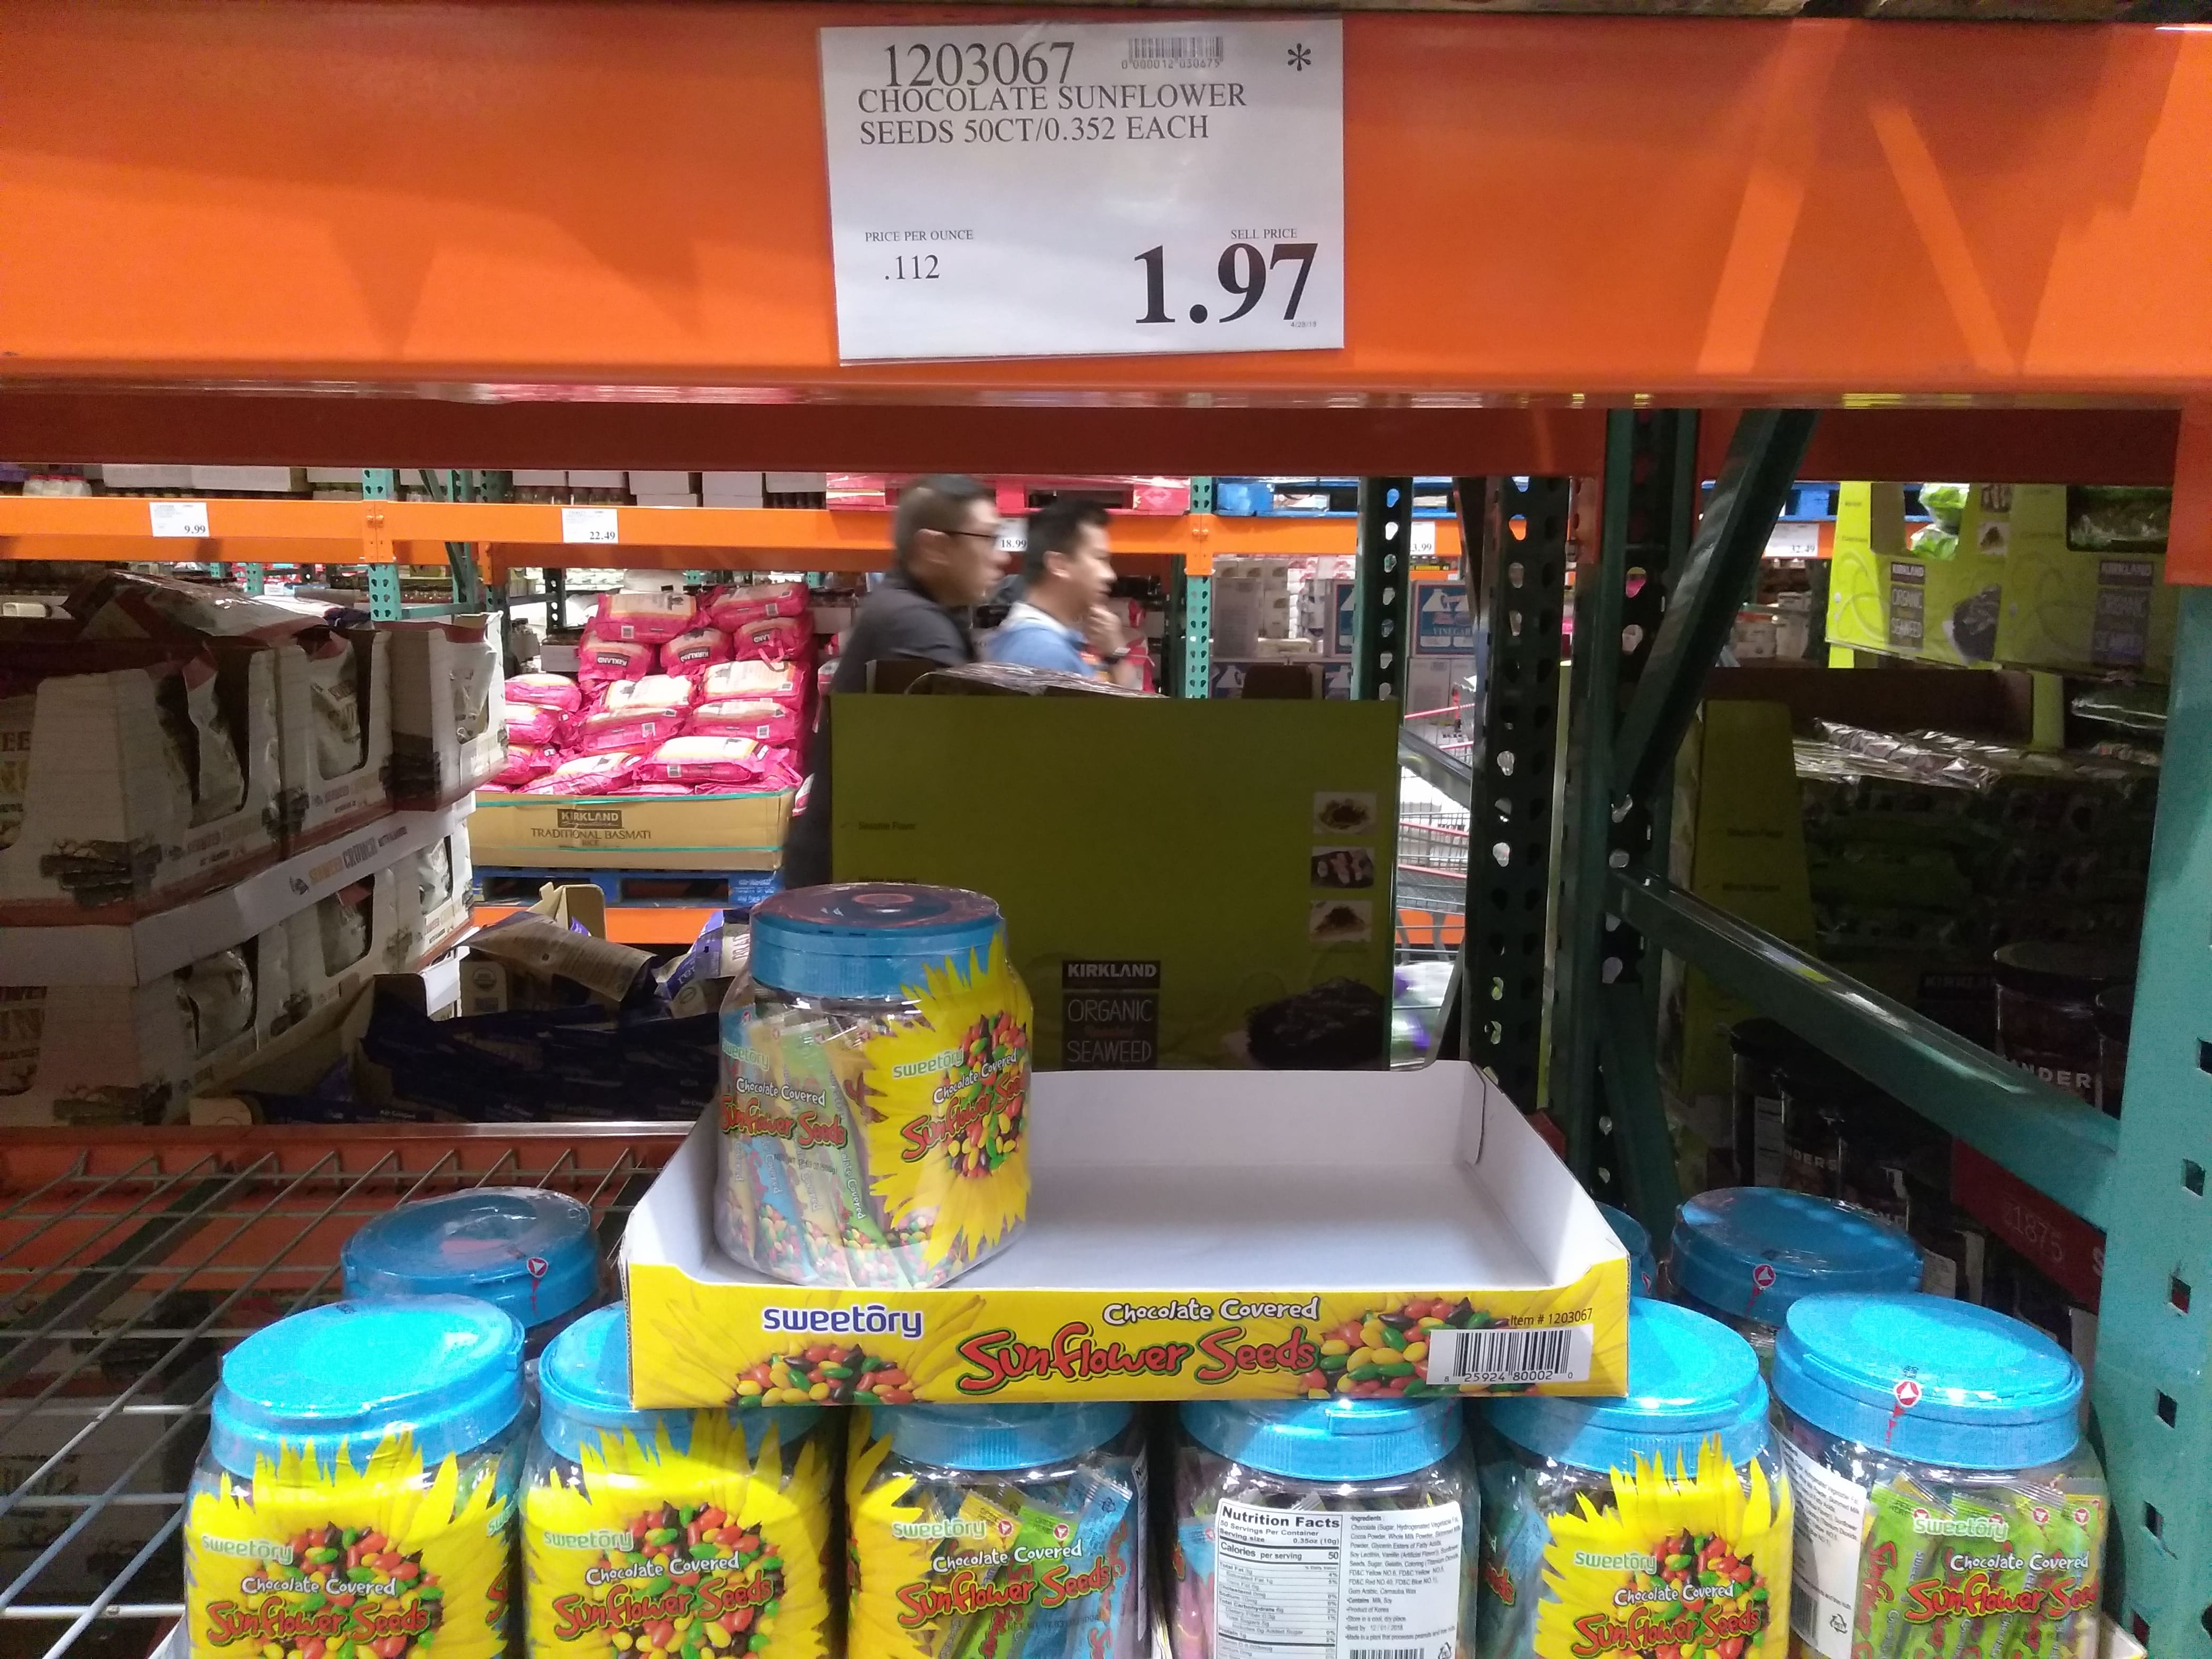 Sweetory Chocolate Covered Sunflower Seeds 50 CT @ Costco (Warehouse Only) YMMV $1.97